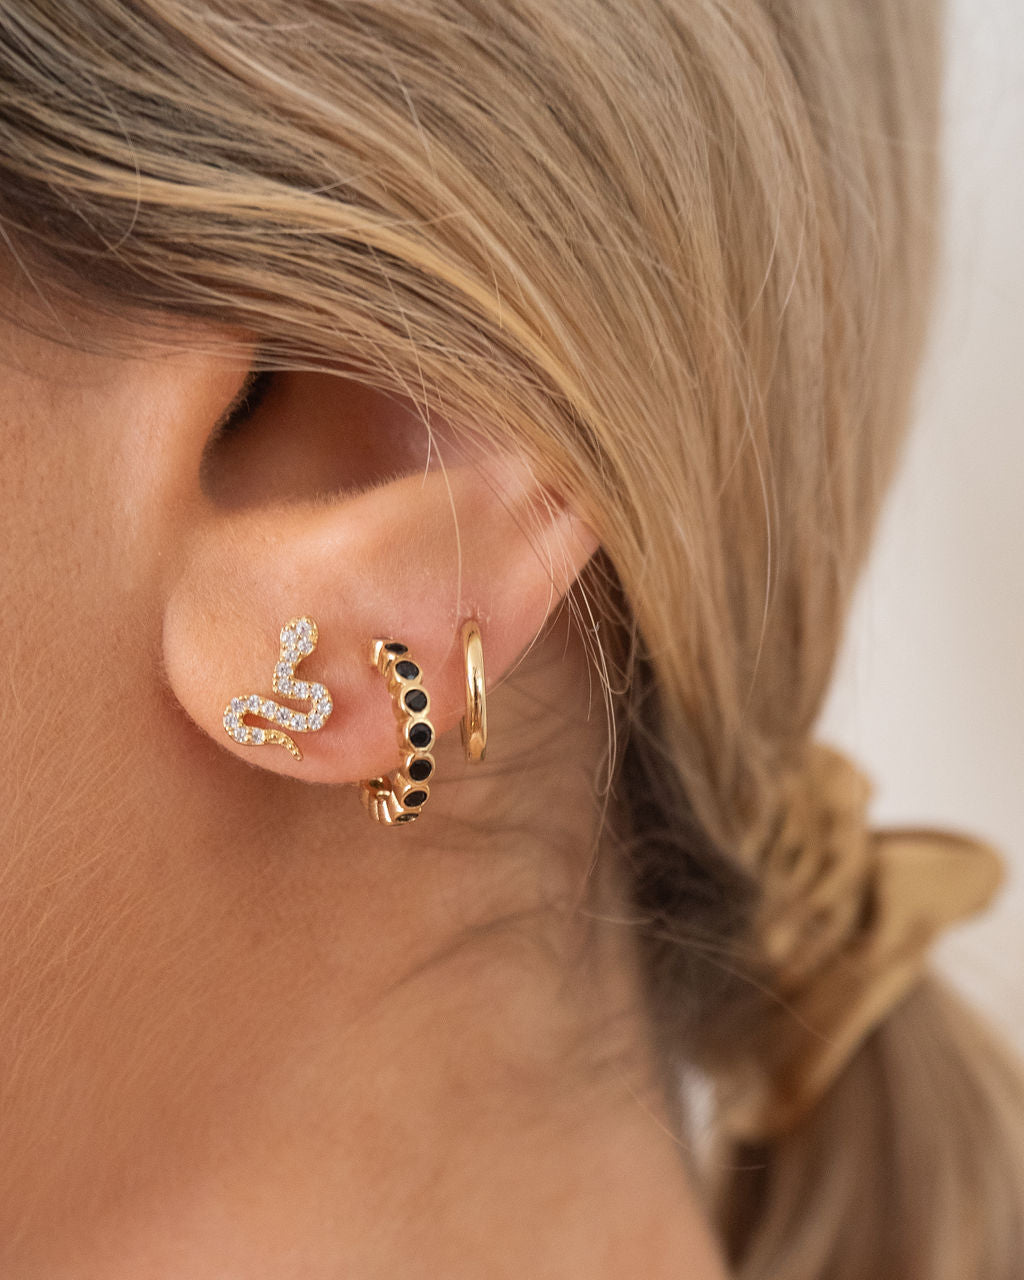 Tyler earrings